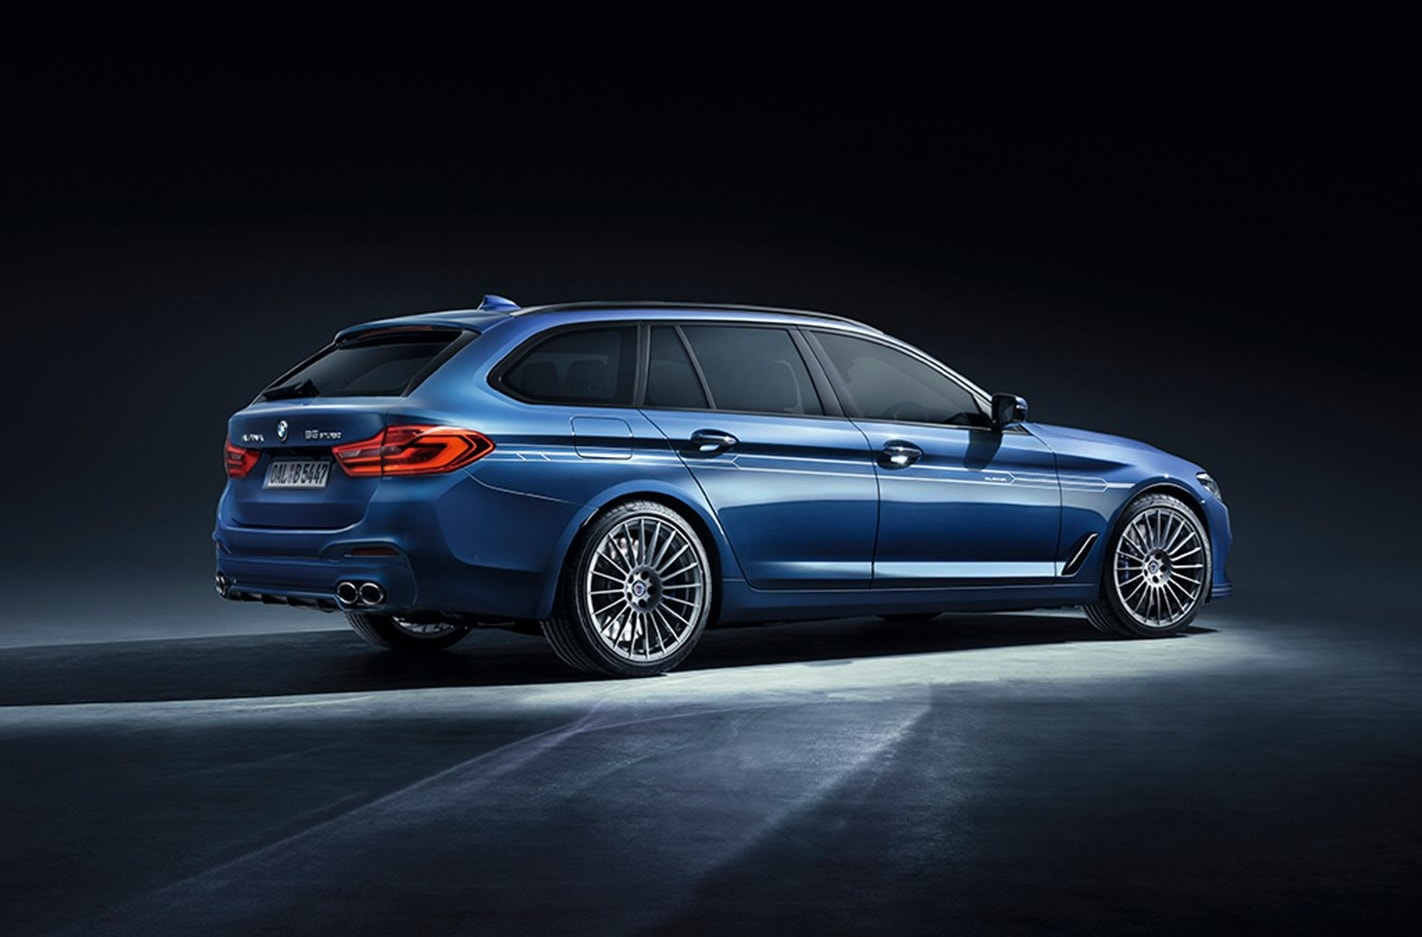 Alpina B5 Touring is the BMW M5 wagon we all want